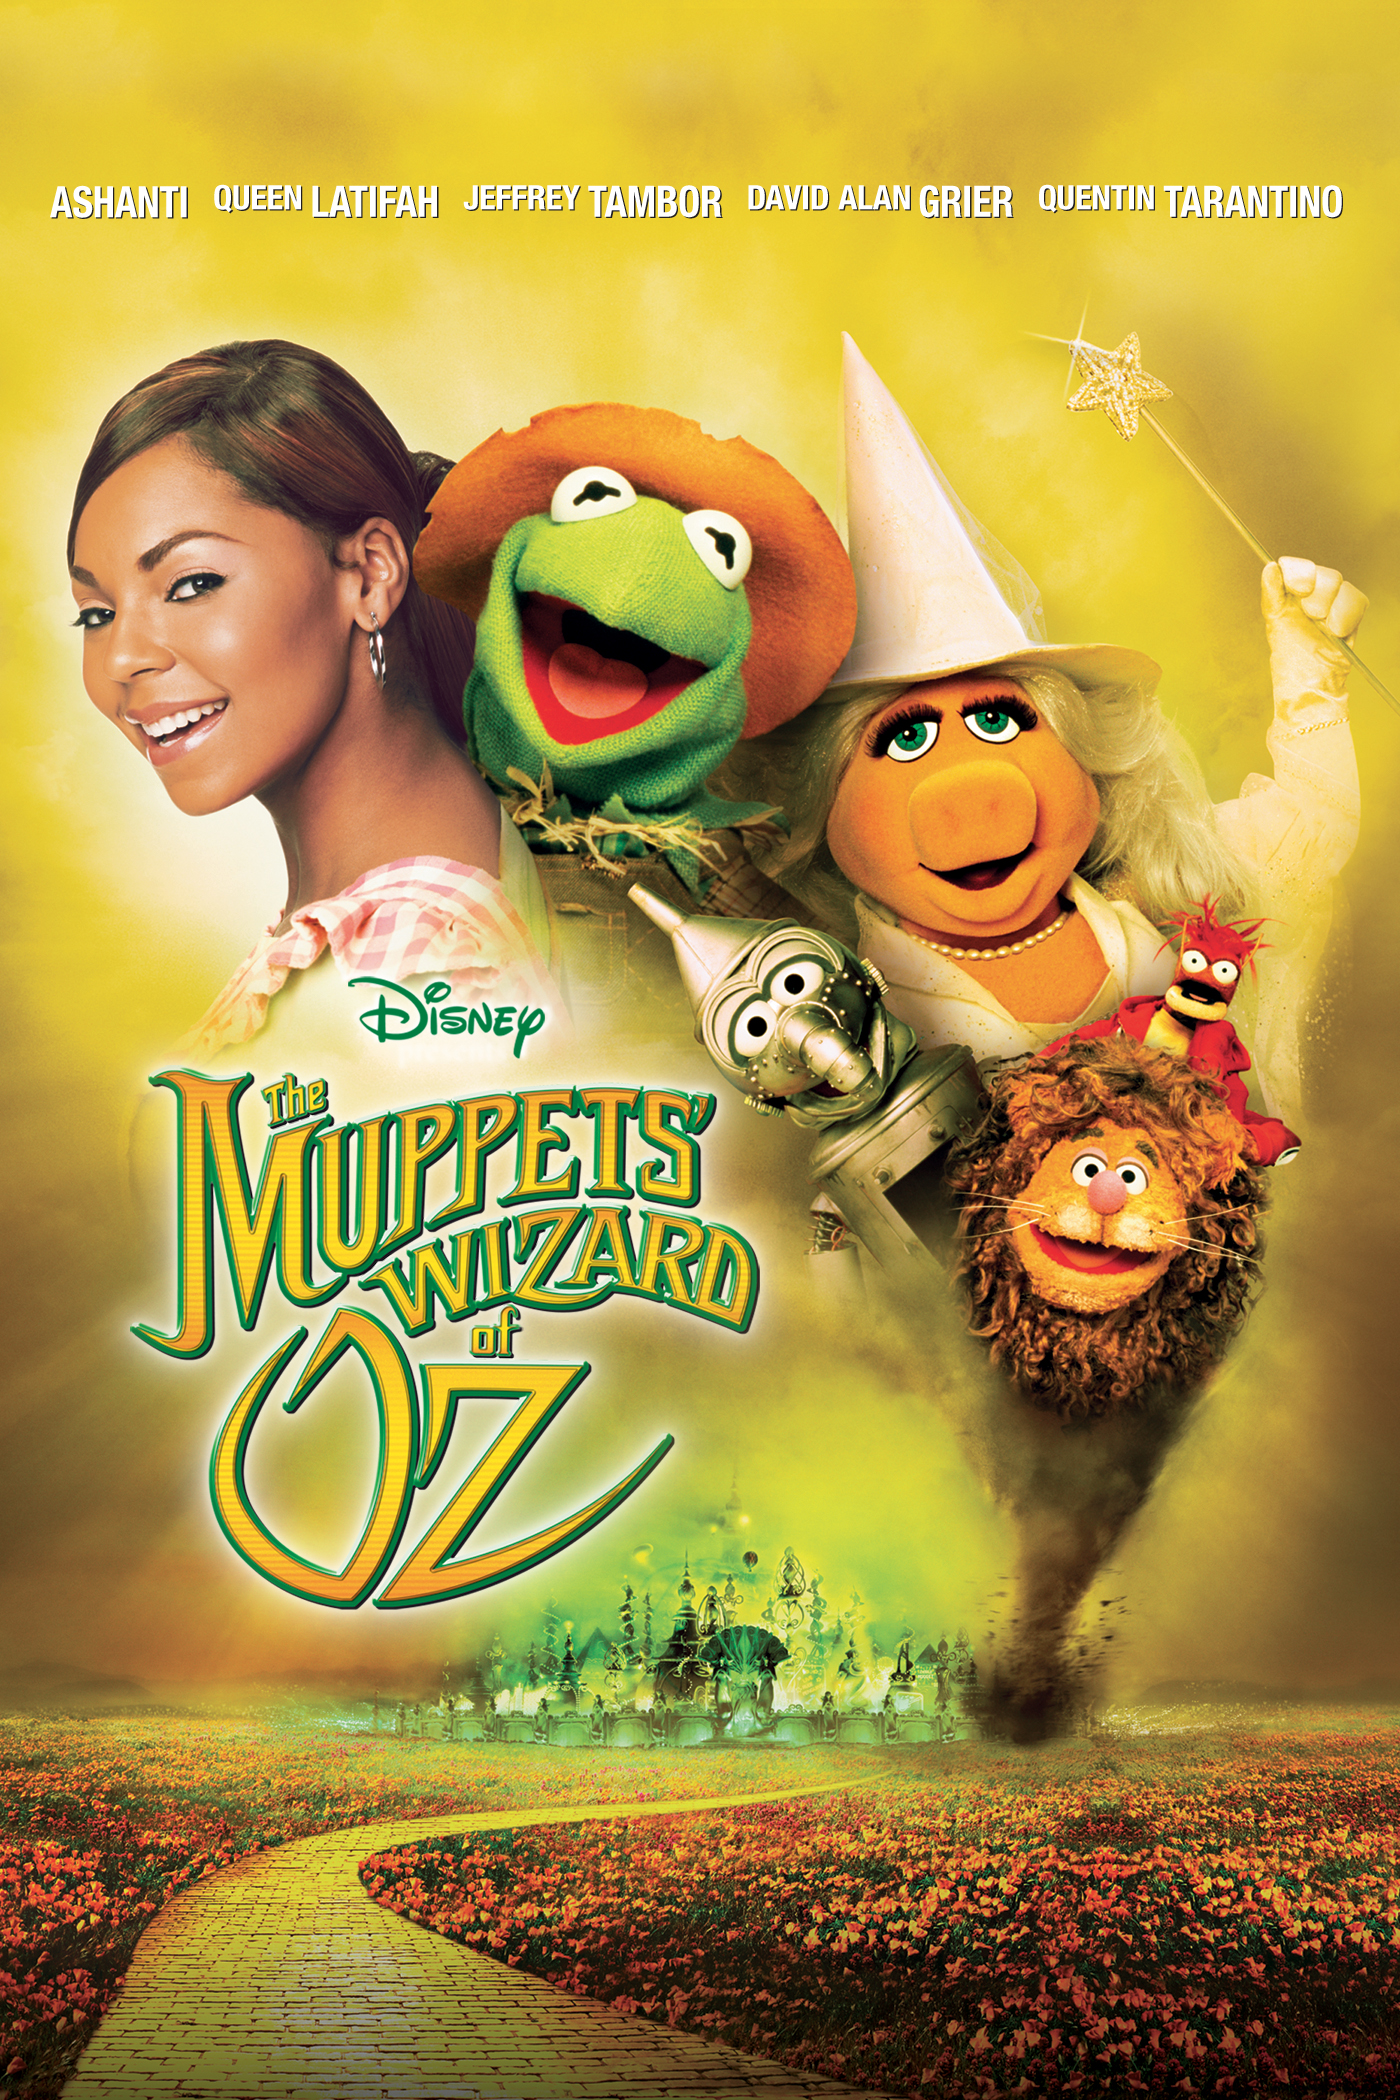 iTunes - Movies - The Muppets' Wizard of Oz